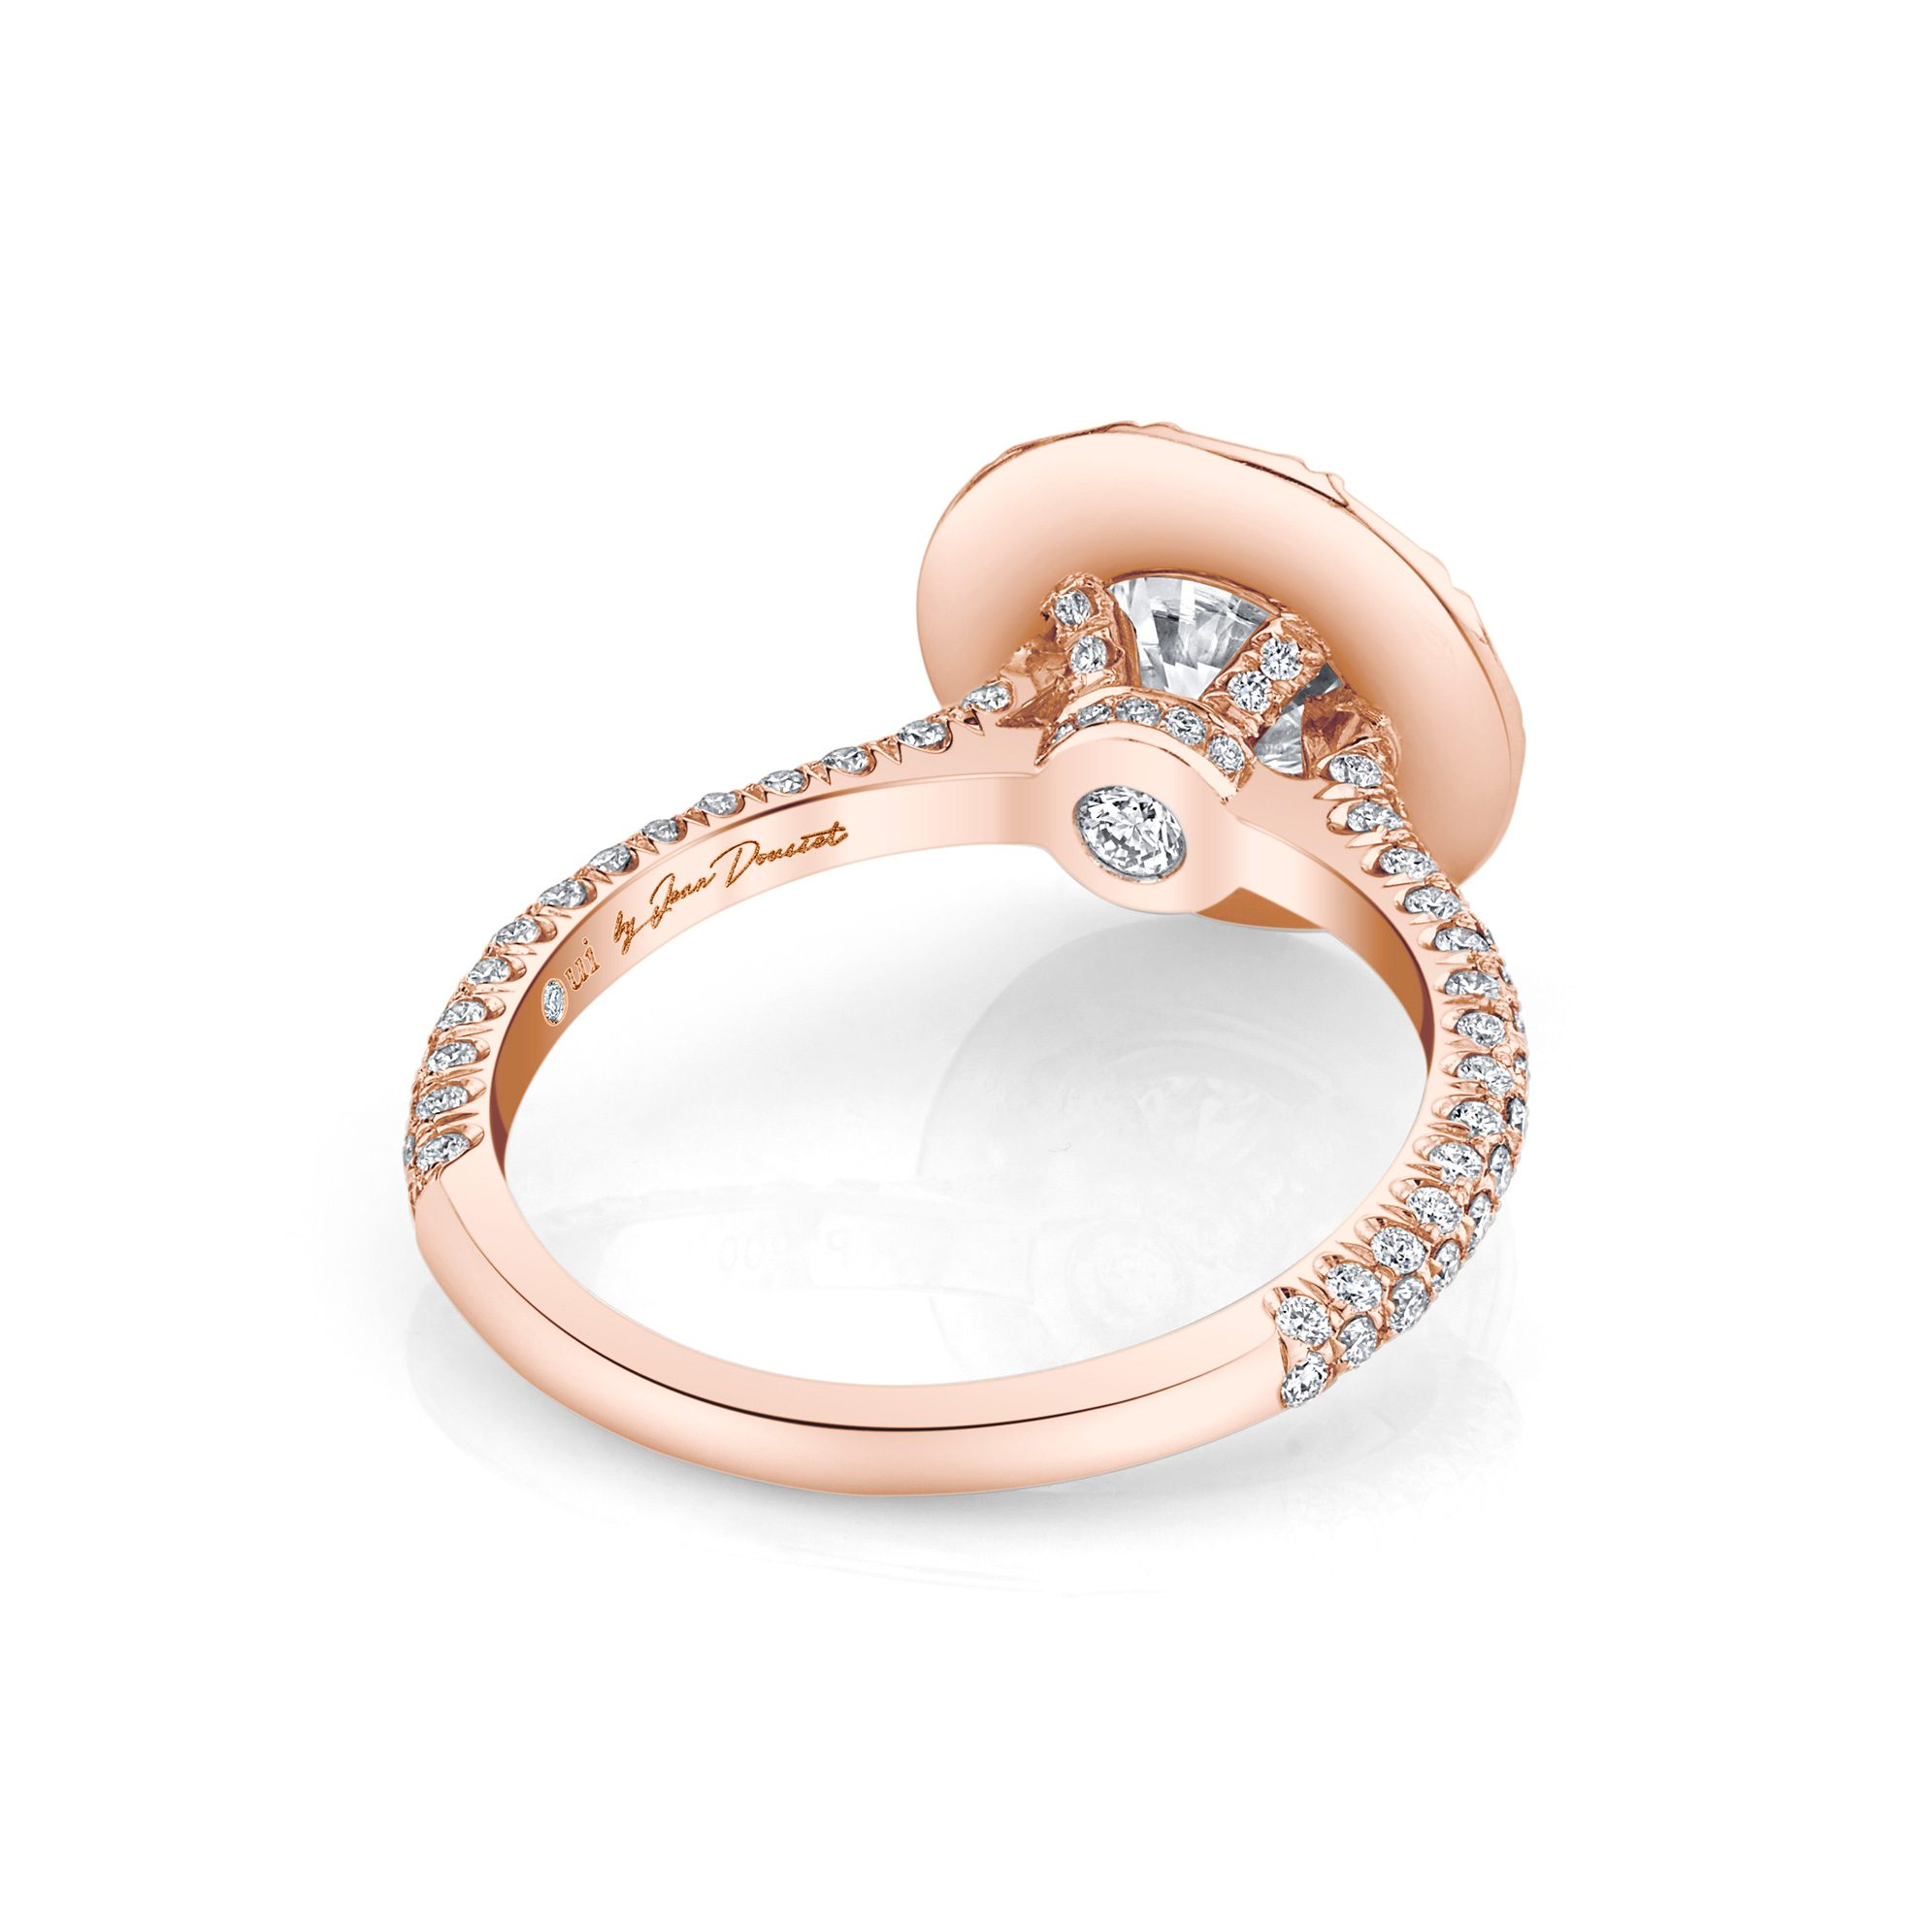 Jacqueline Round Brilliant Seamless Solitaire® Engagement Ring 18k Rose Gold Back View by Oui by Jean Dousset